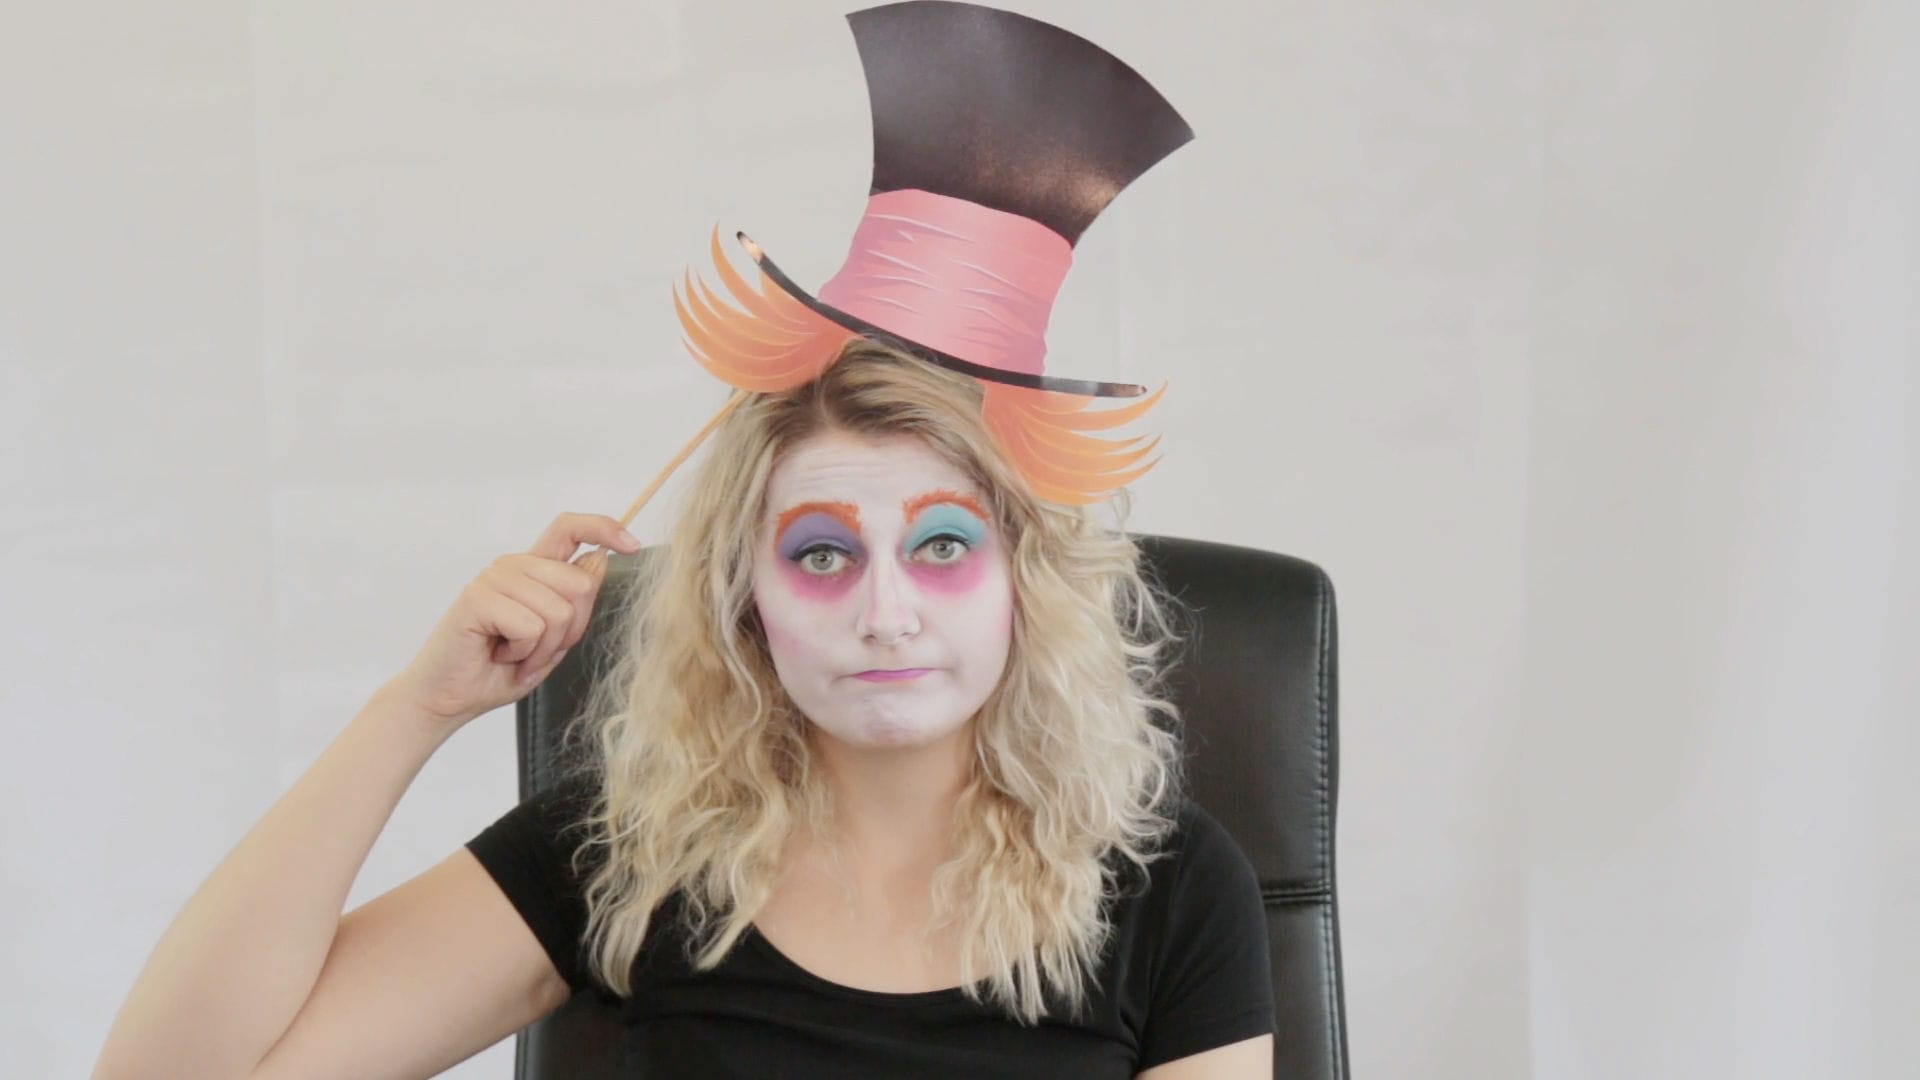 Tips For Creating The Mad Hatter's Look